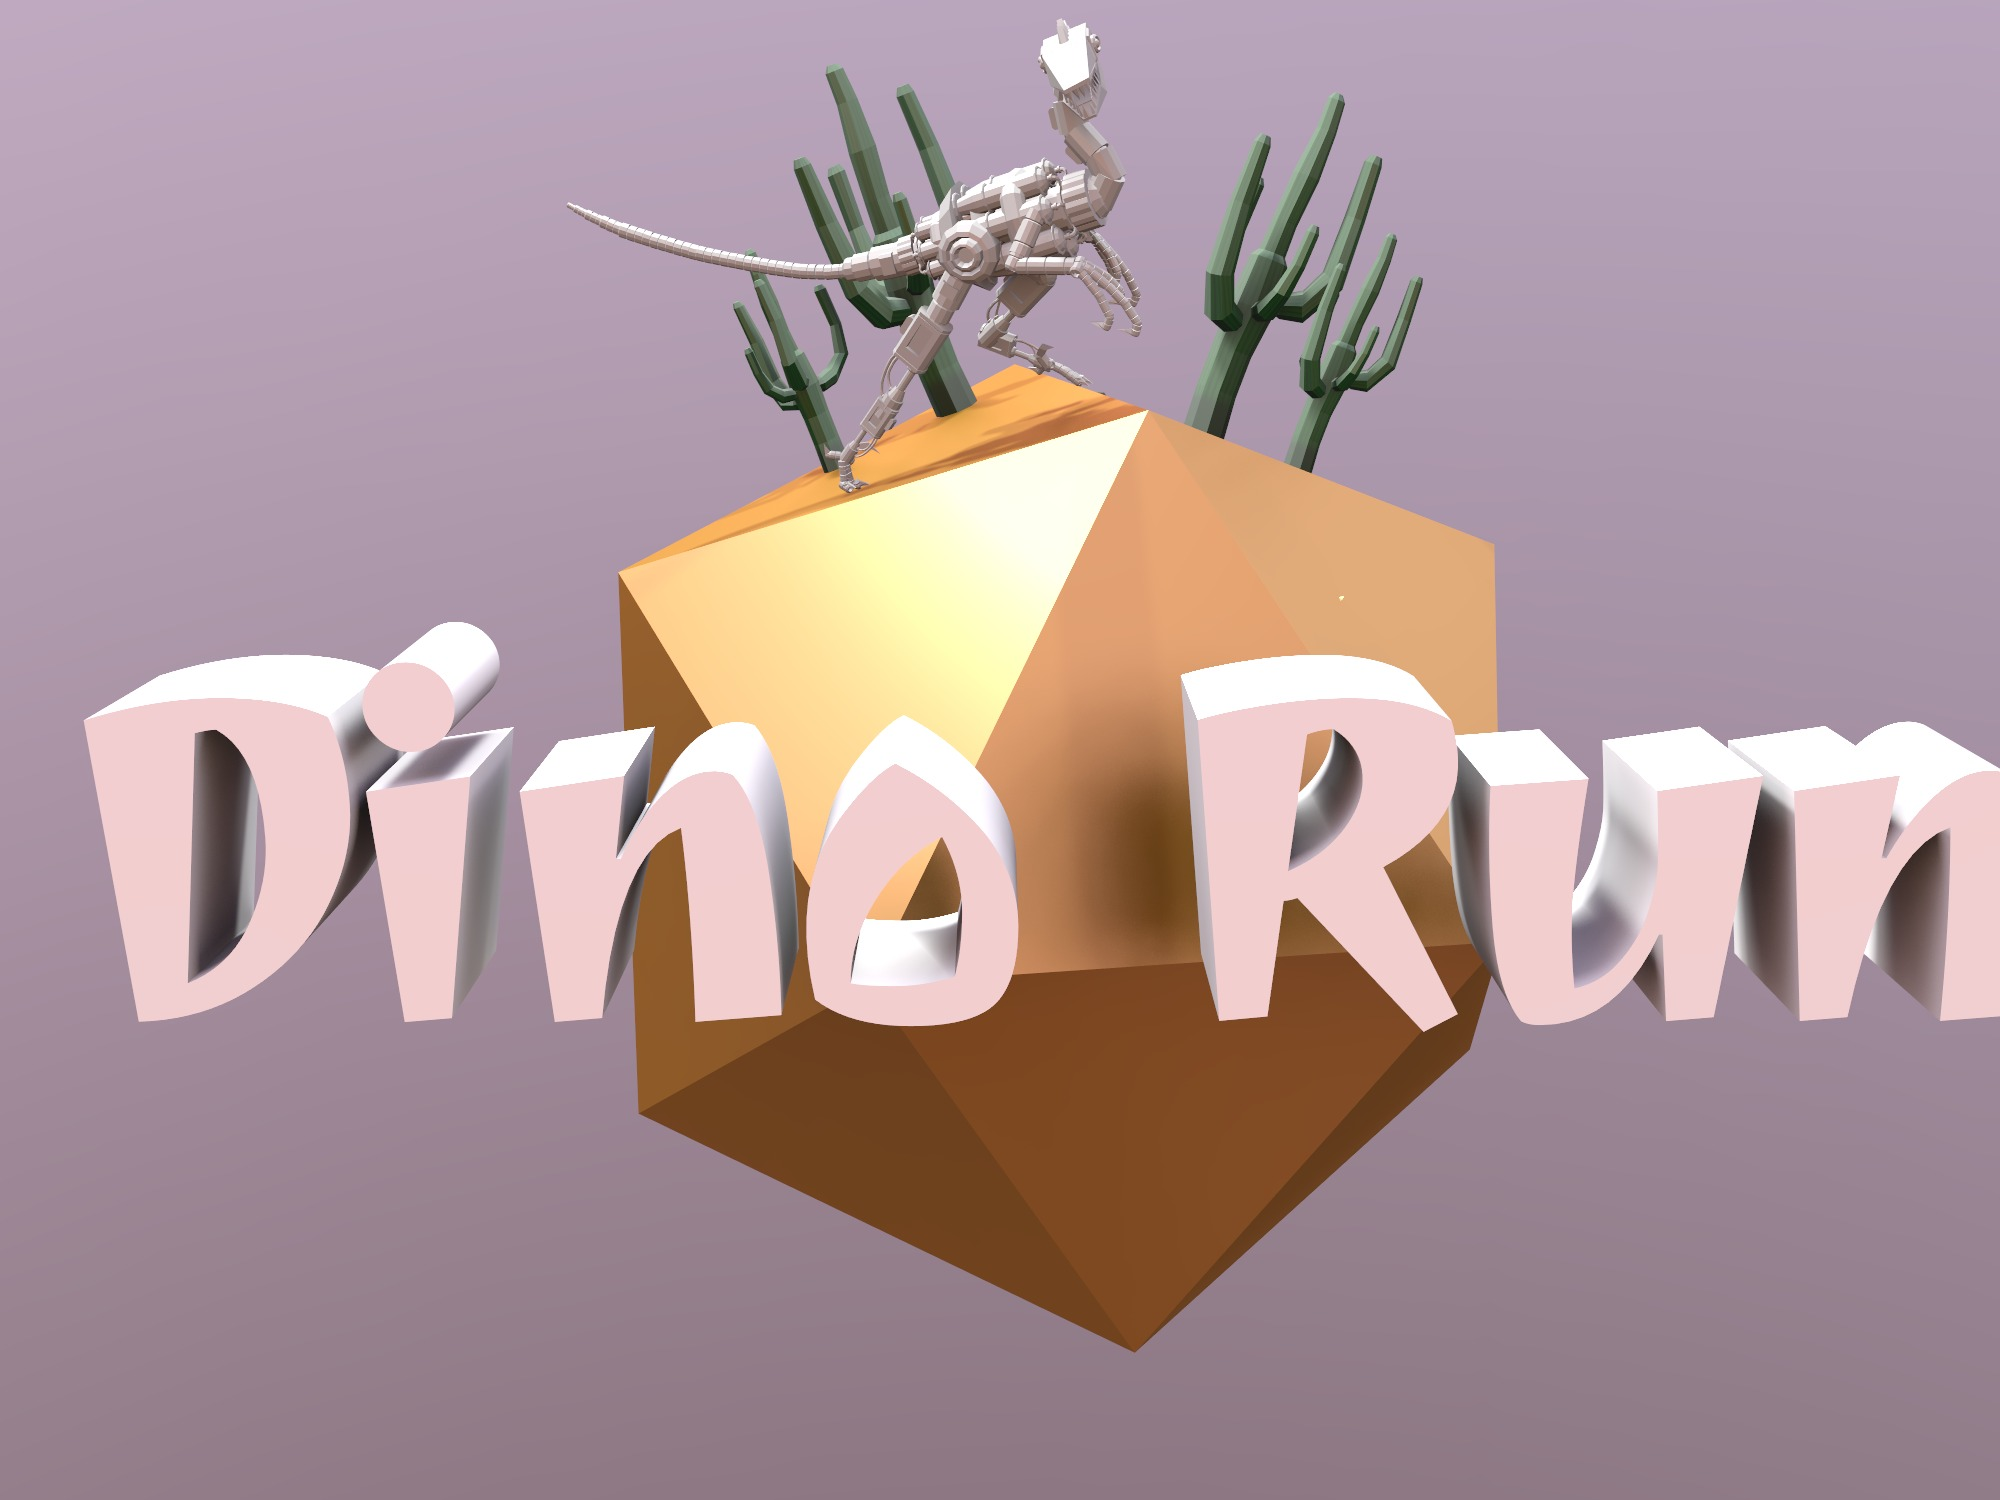 Dino Run (copy) - 3D design by 3007572 on Dec 17, 2018